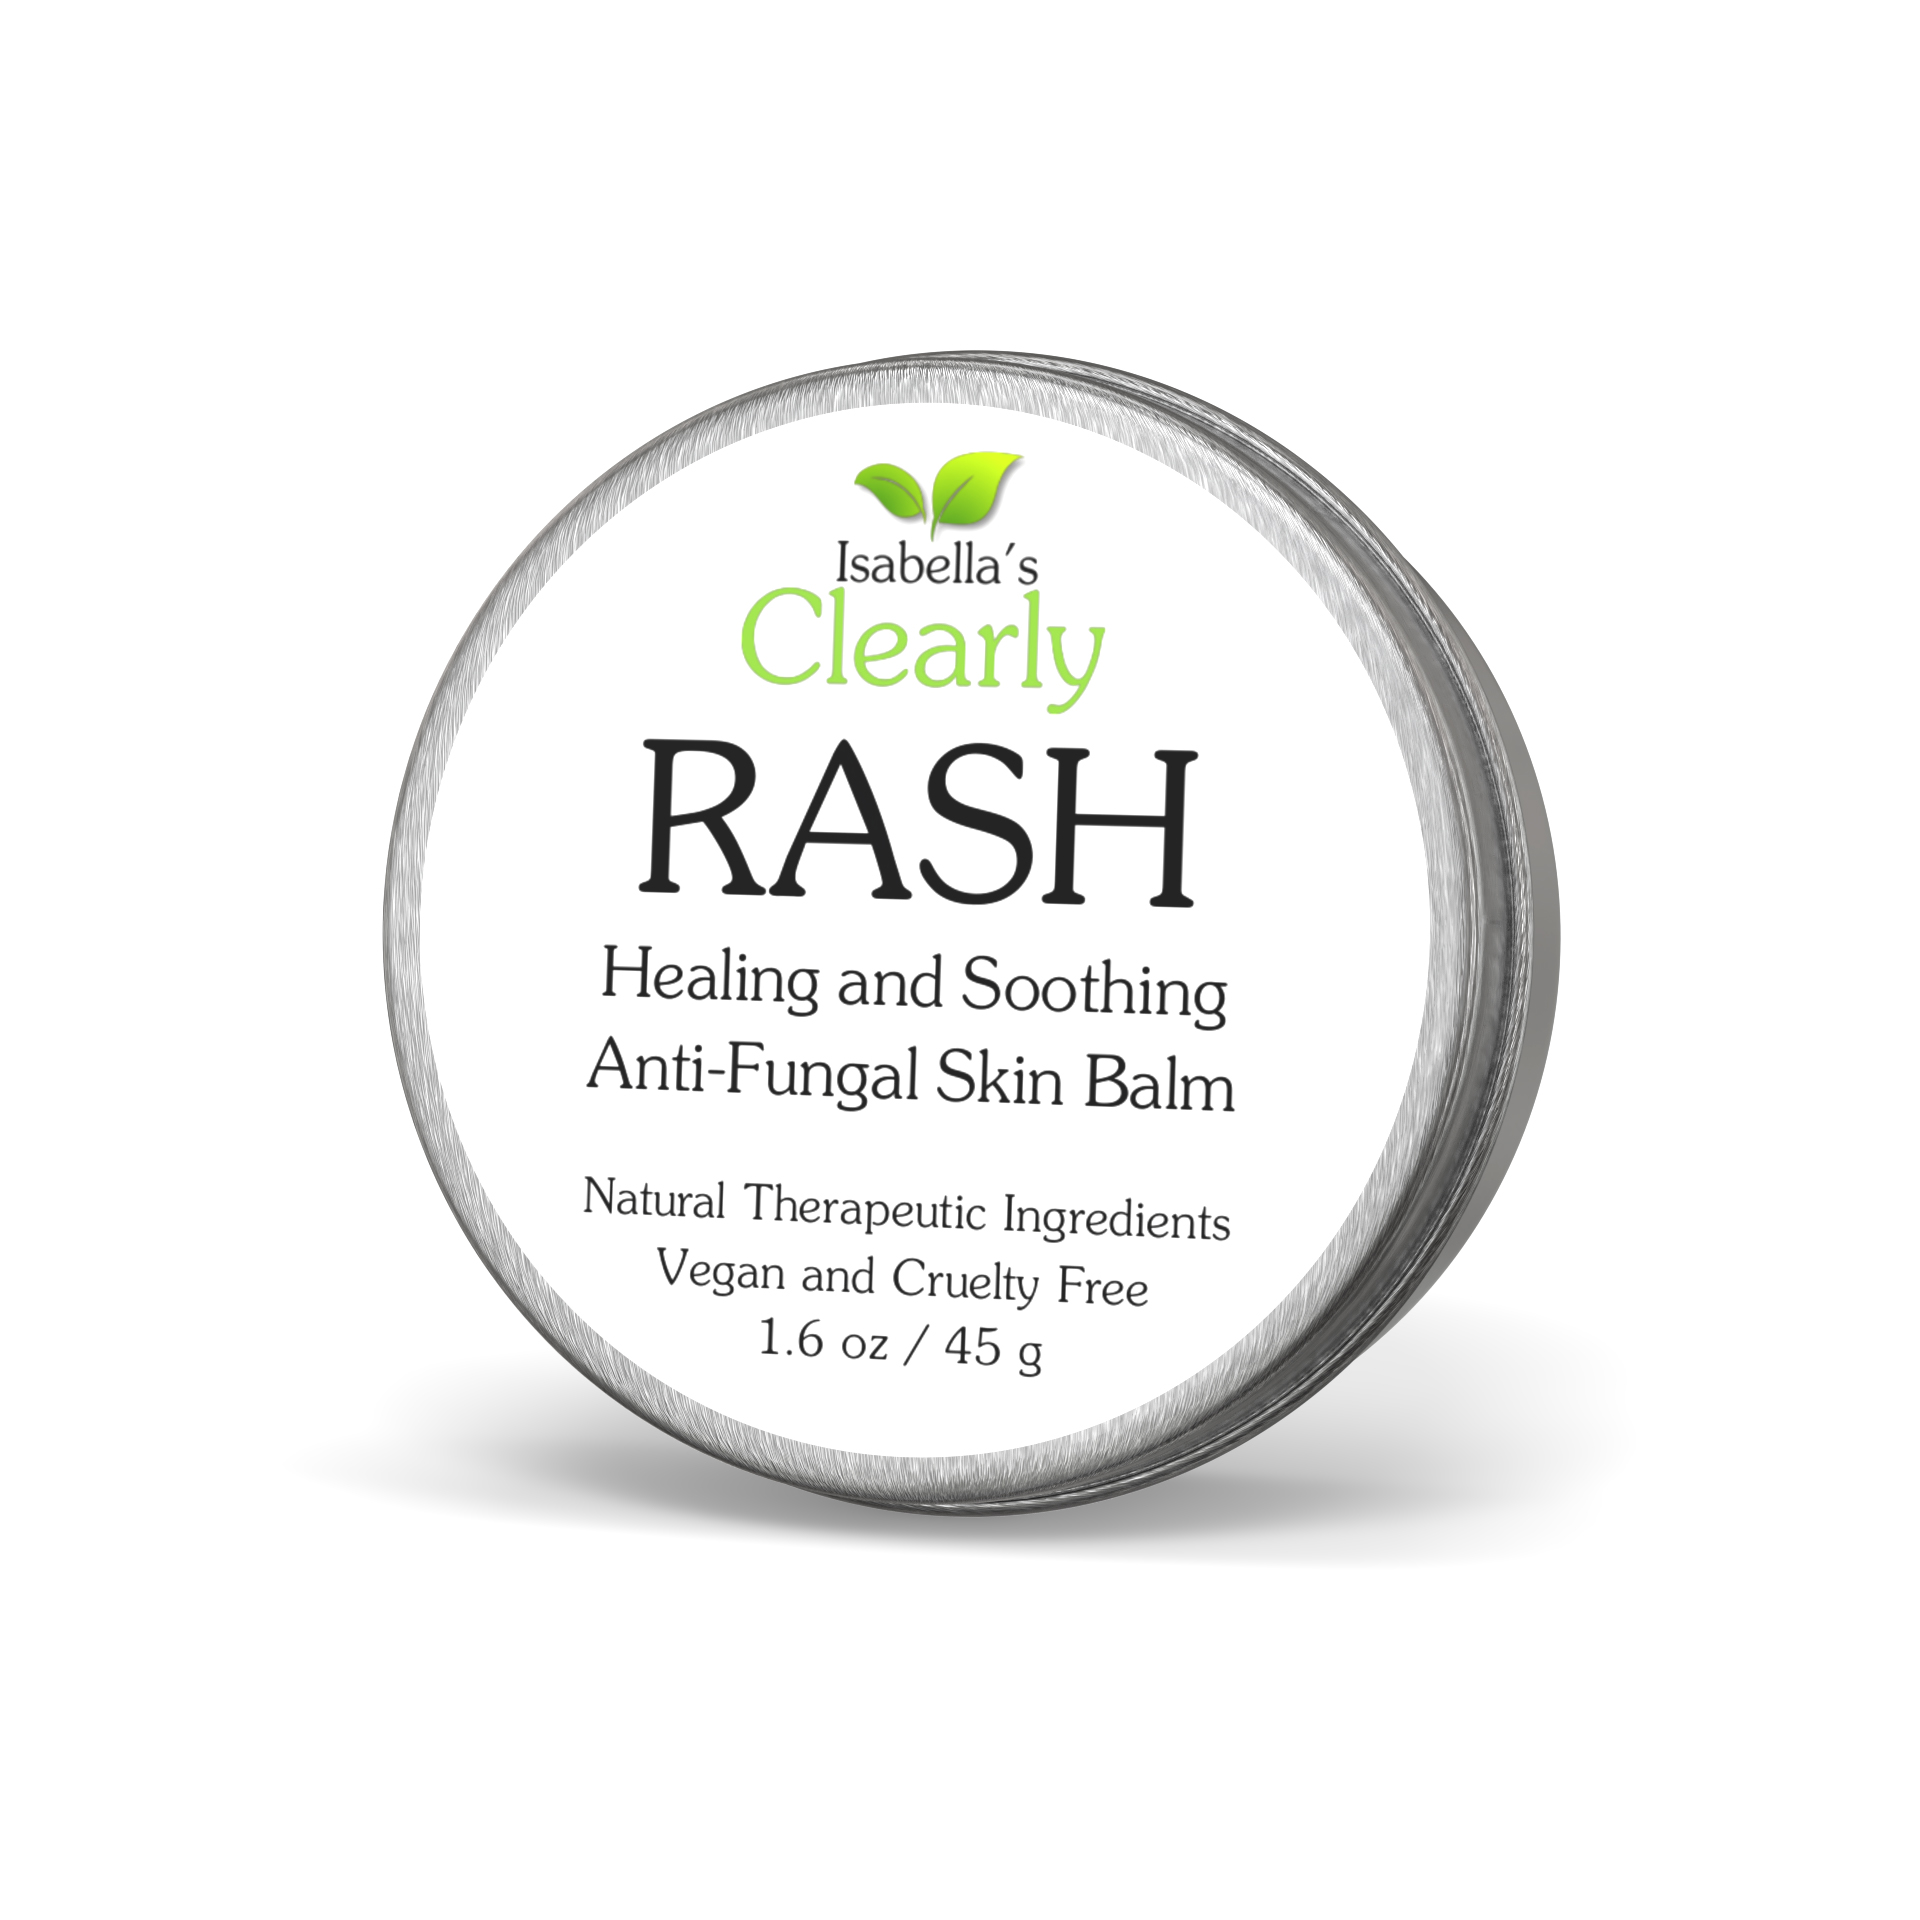 Clearly RASH, Anti Fungal Balm for Itch and Rash Relief